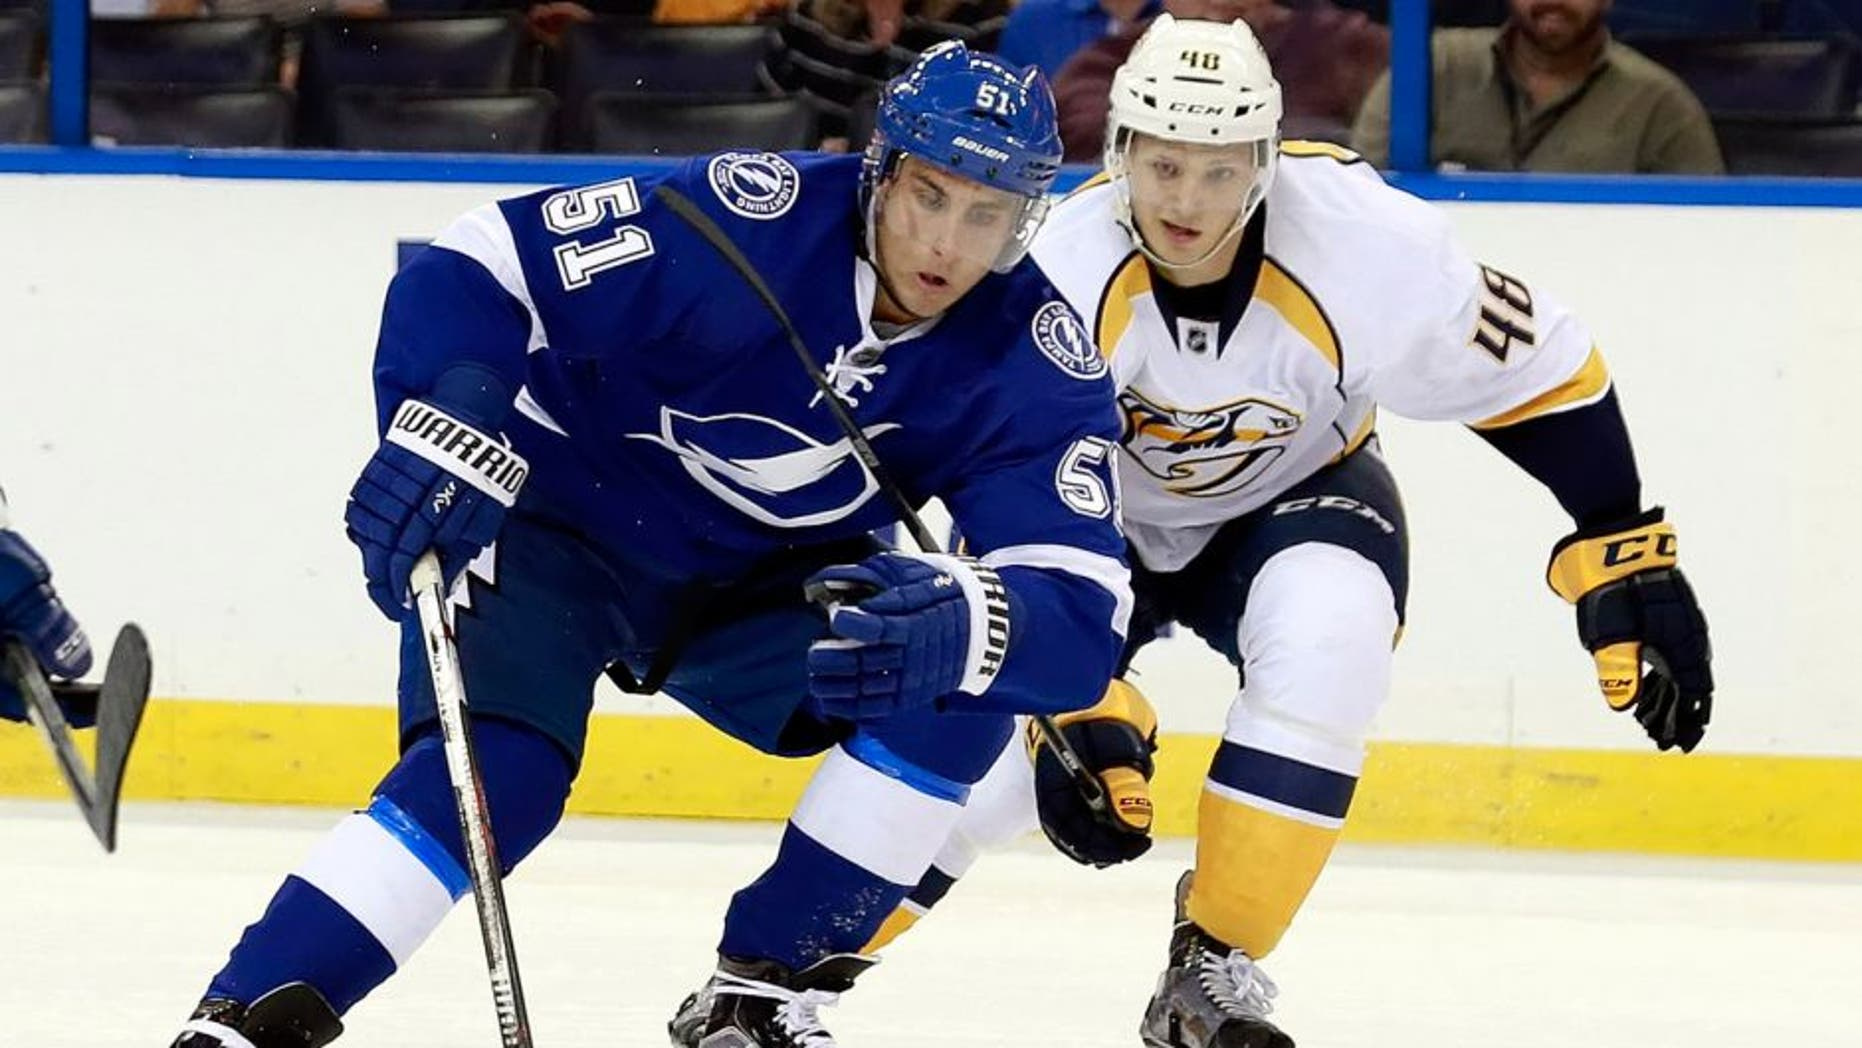 Sep 22, 2015; Tampa, FL, USA; Tampa Bay Lightning center Valtteri Filppula (51) skates with the puck as Nashville Predators defenseman Kristian Nakyva (48) defends during the second period at Amalie Arena. Mandatory Credit: Kim Klement-USA TODAY Sports